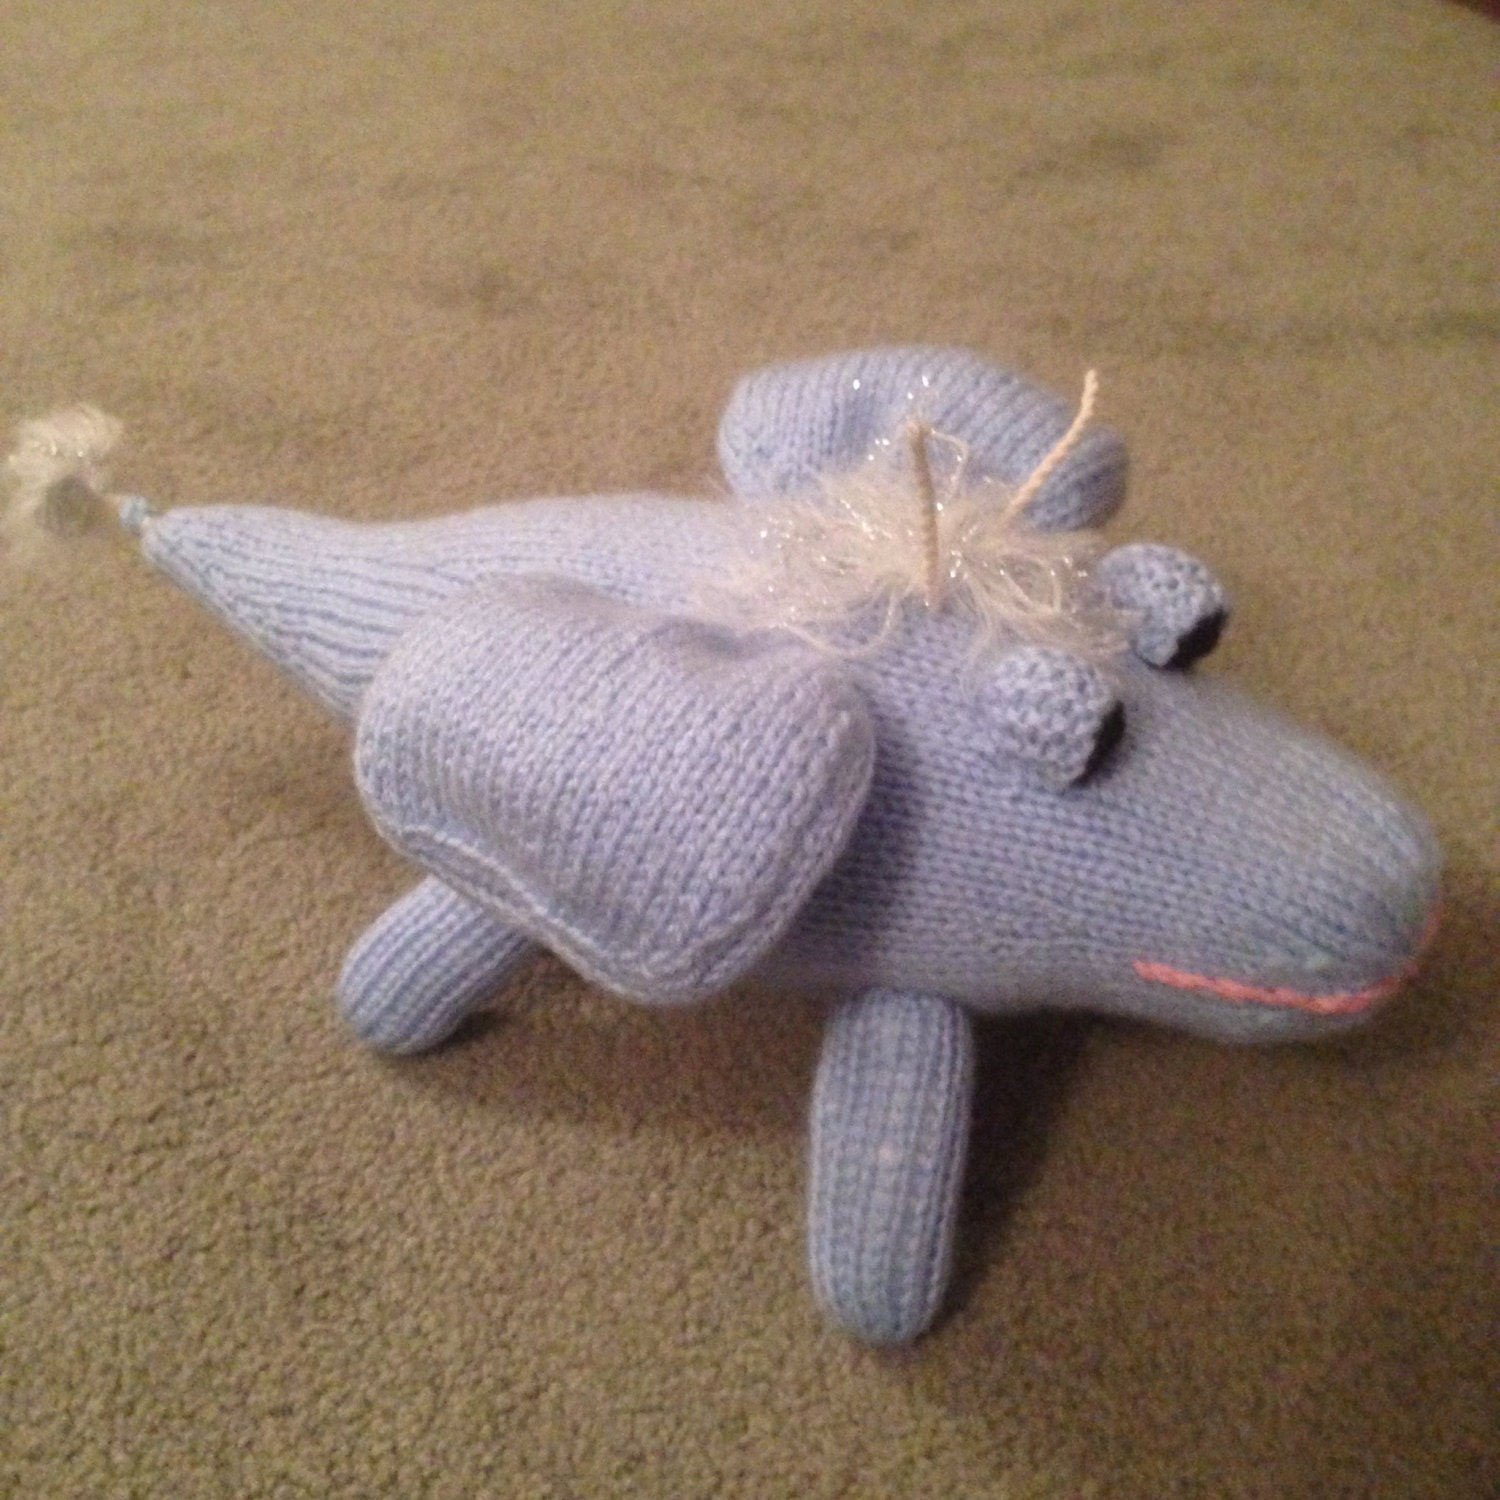 Knitting Pattern Inspired by the Skymoo on the BBC Programme